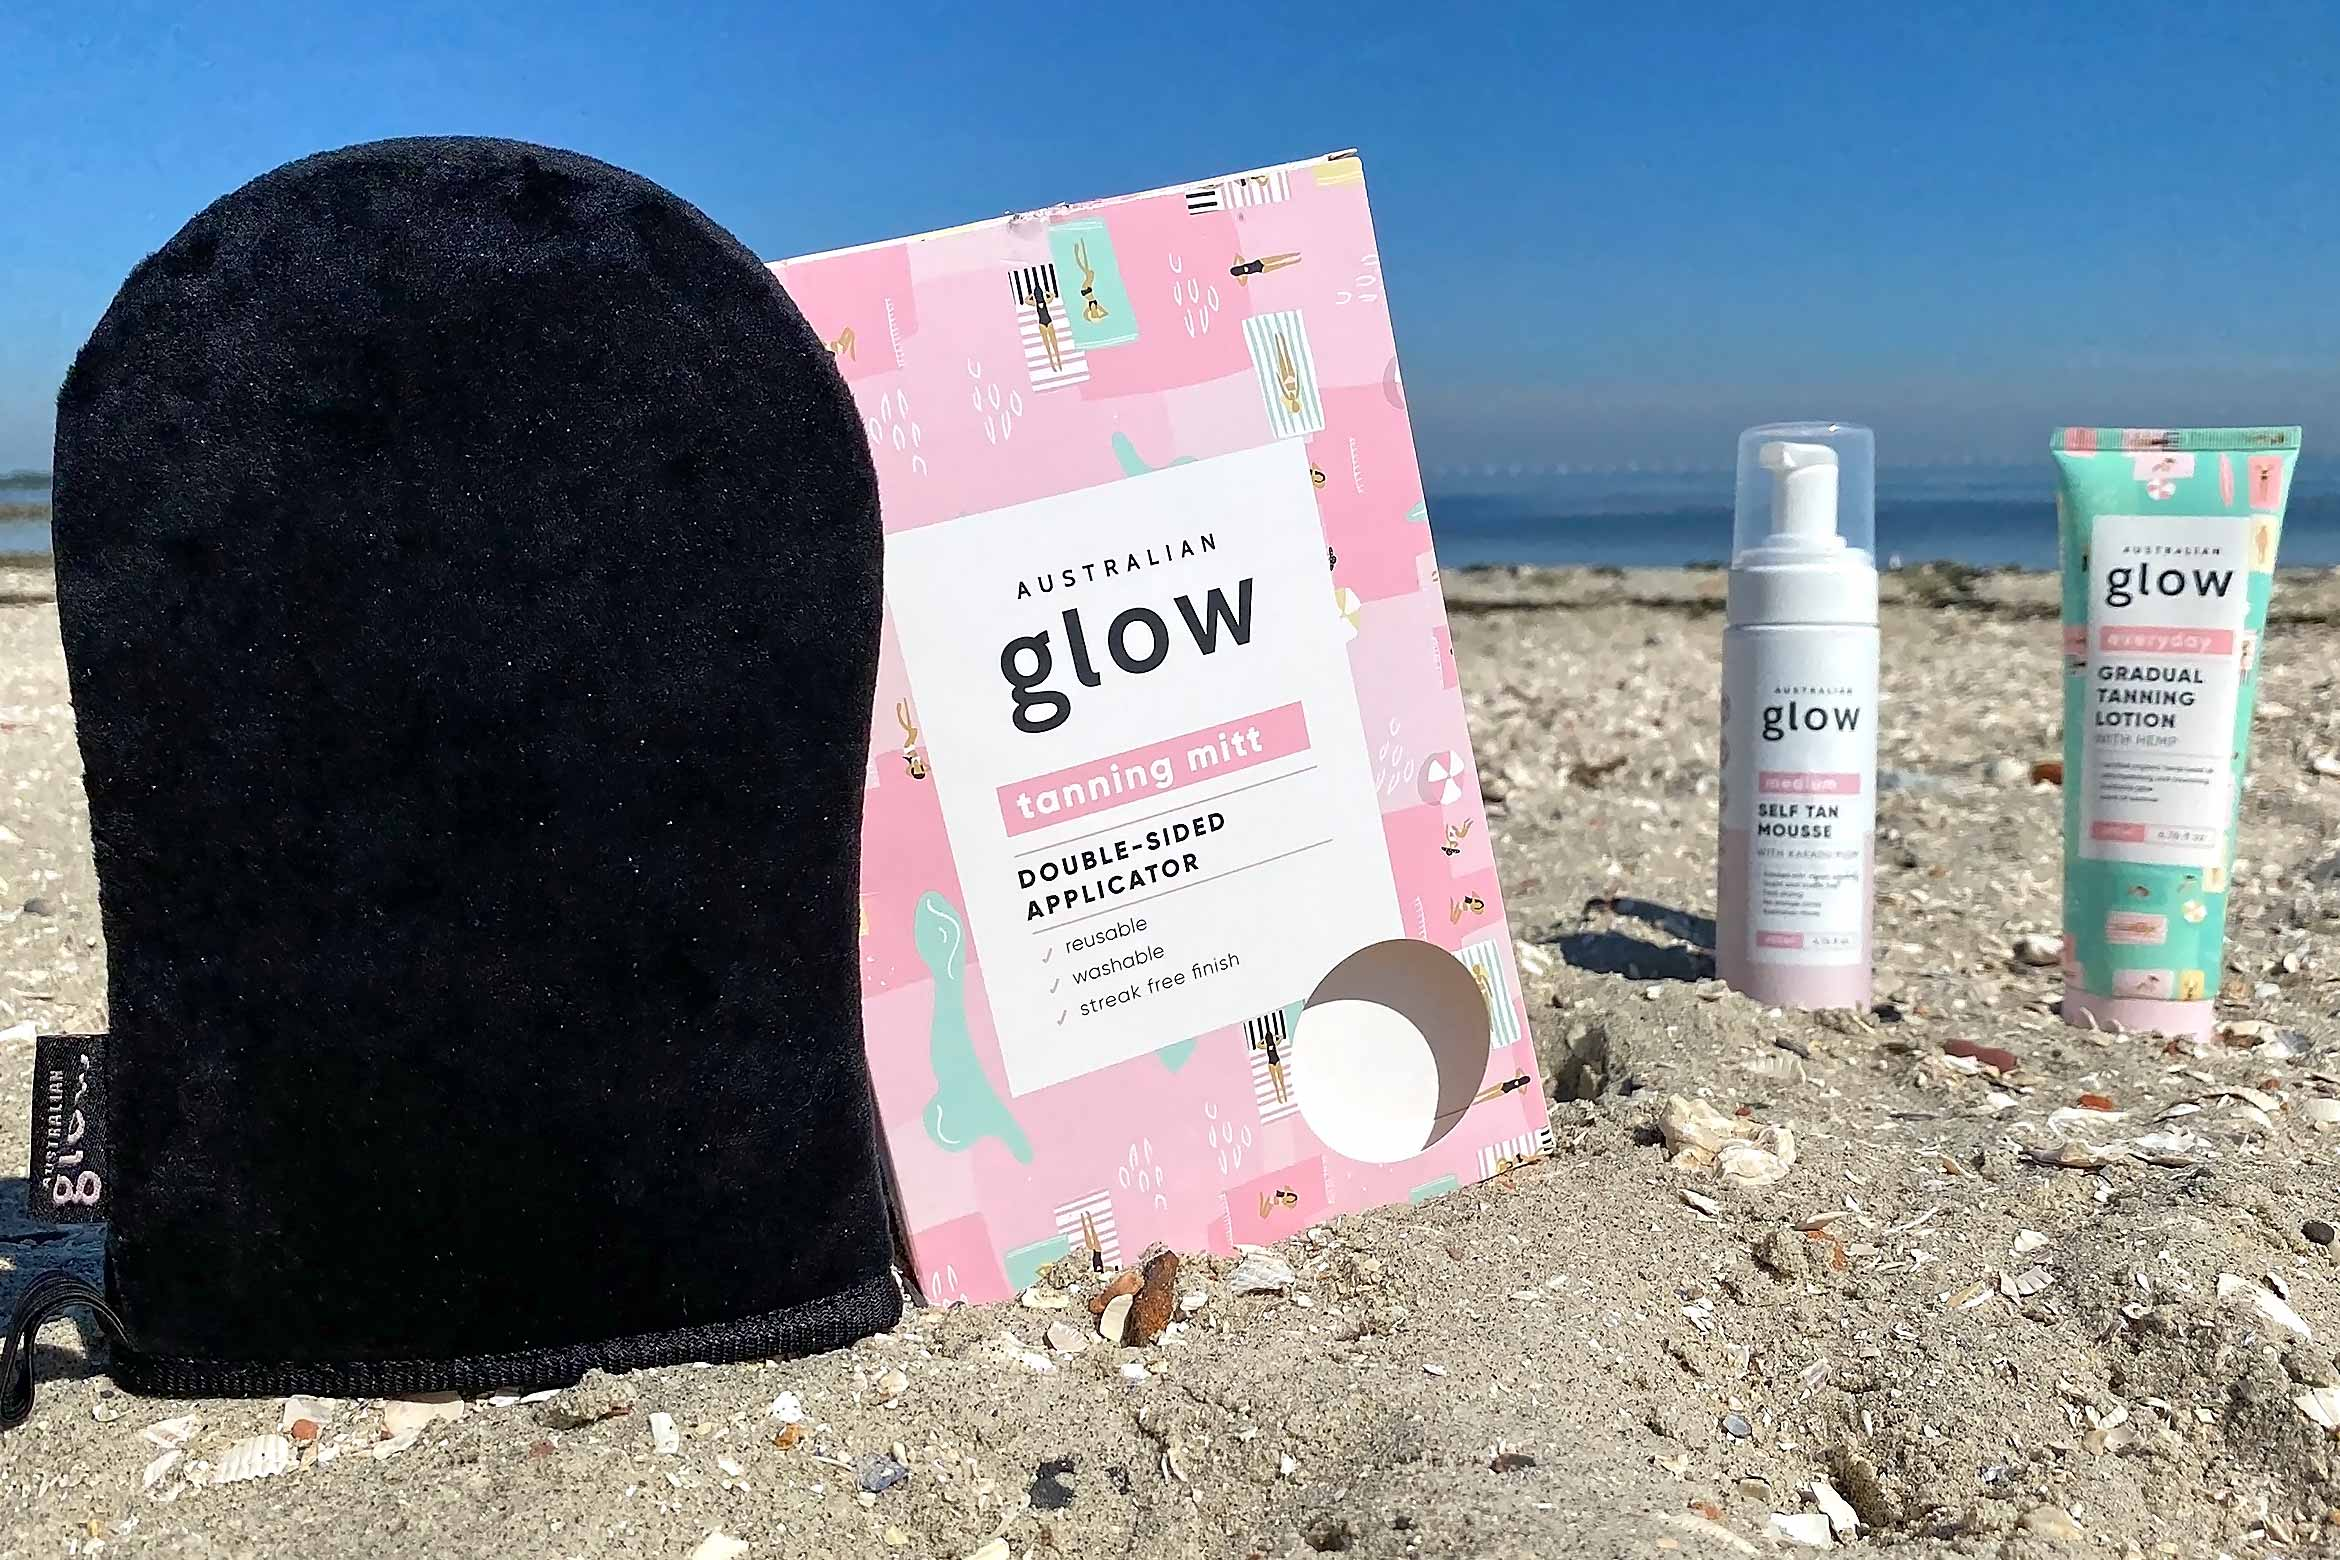 australian glow double-sided tanning mitt review